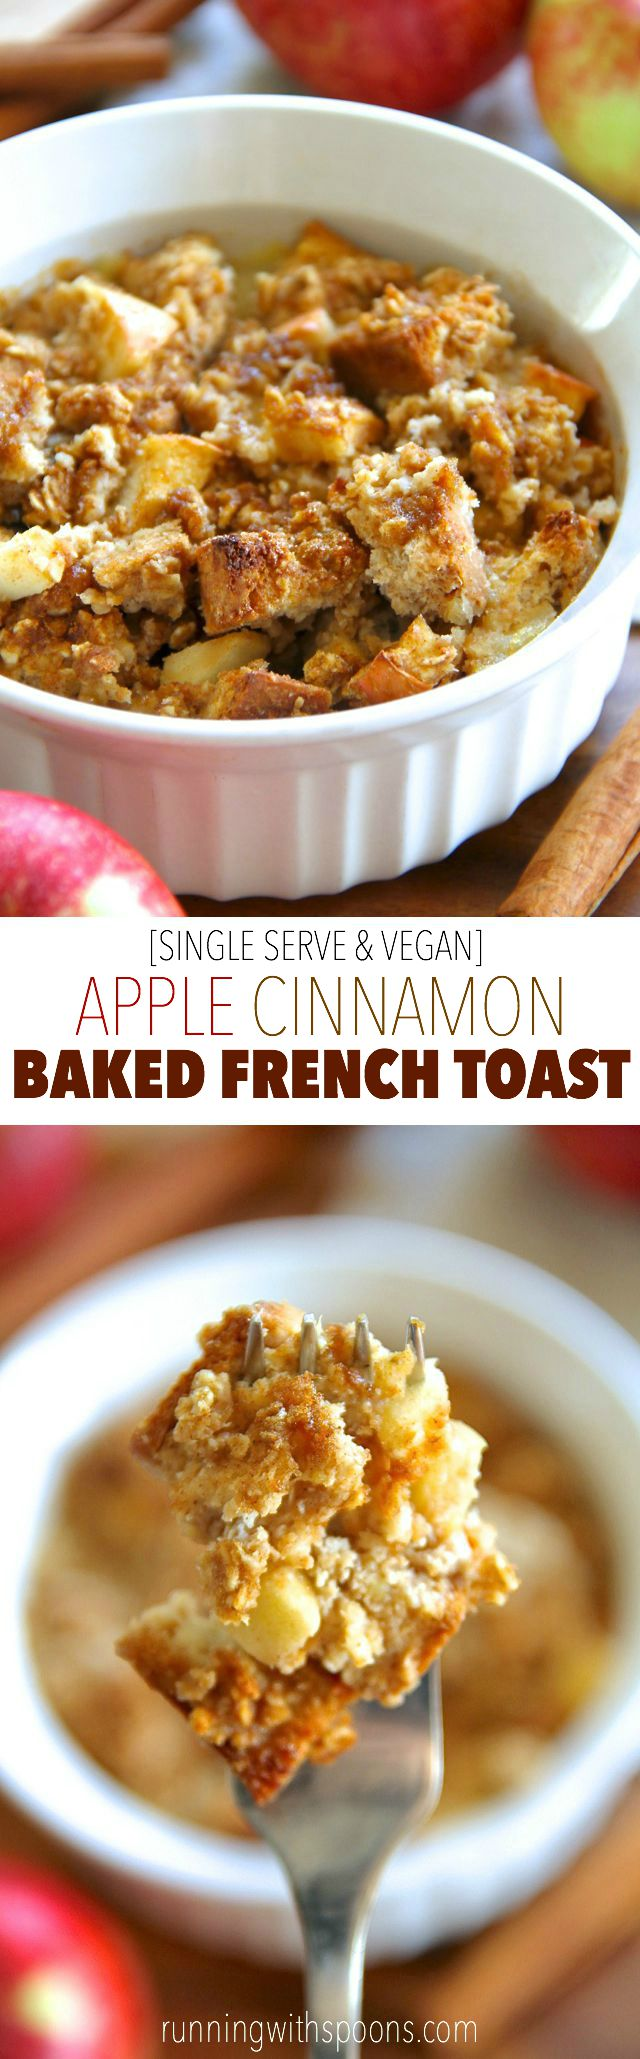 This single serve baked French toast is spiked with the delicious combination of apples and cinnamon! It's vegan, refined sugar free, easily made gluten-free, and packed with fiber and plant-based protein. A healthy and delicious breakfast!    runningwithspoons.com